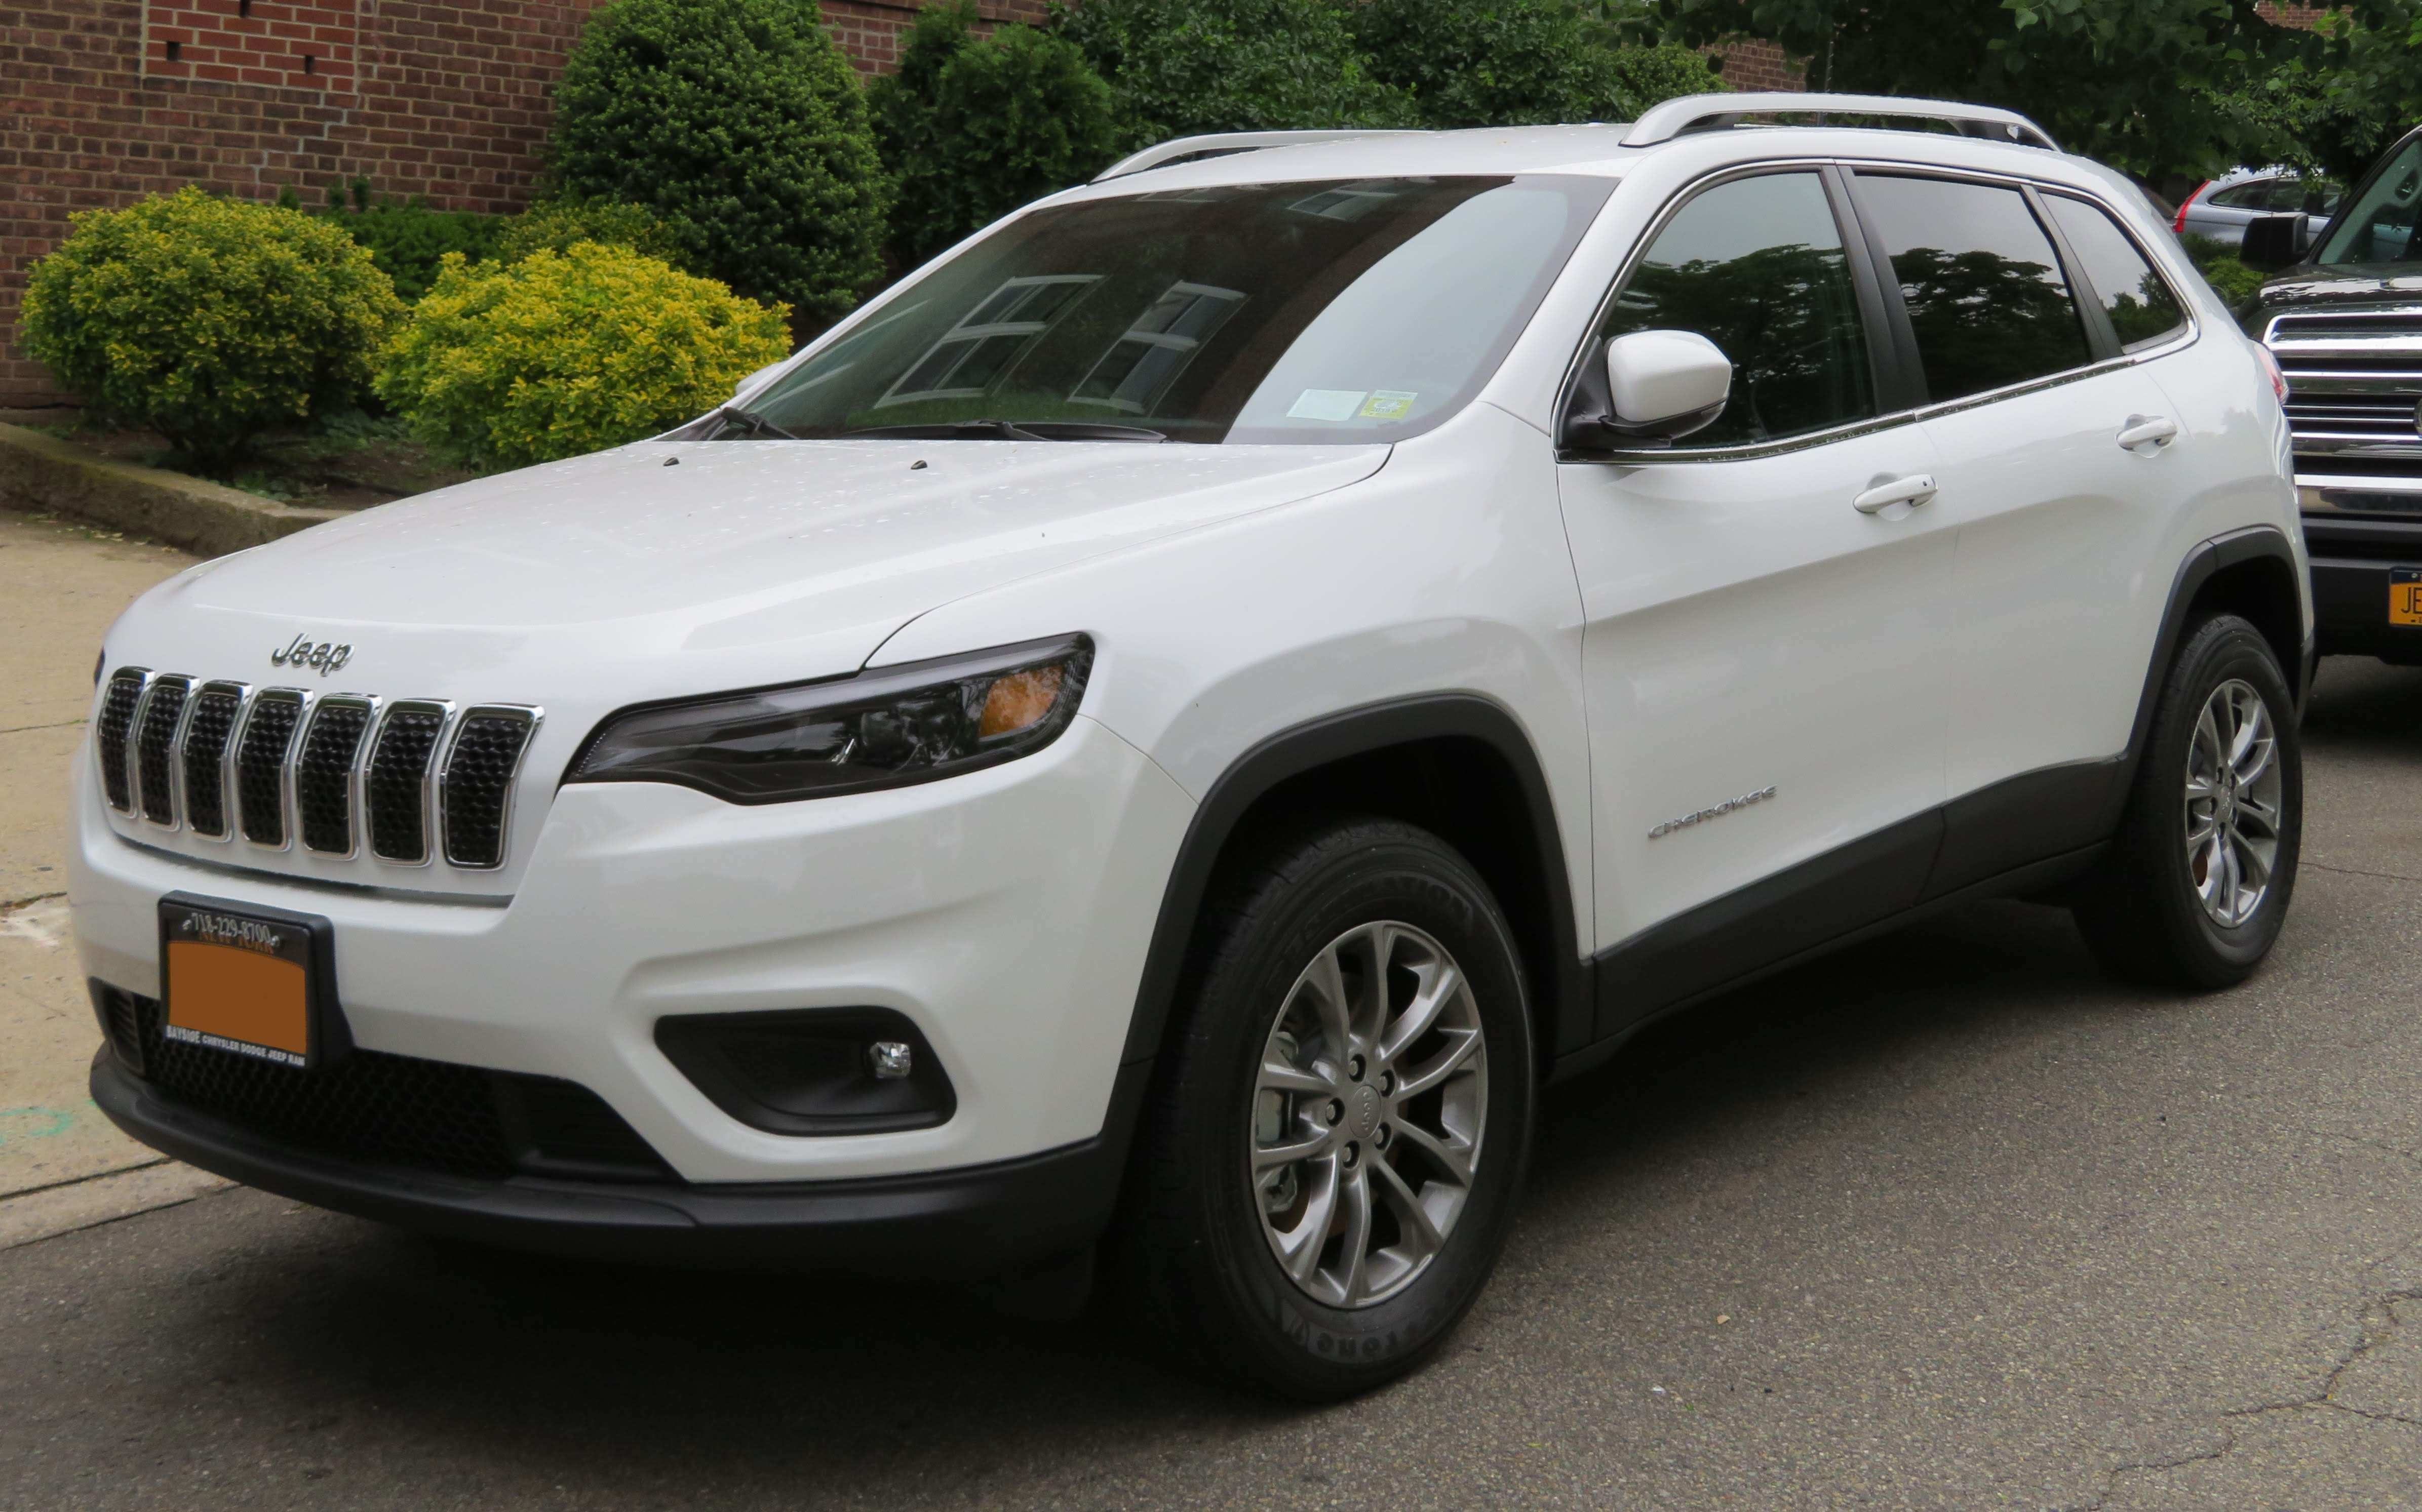 58 All New 2019 Jeep Trailhawk Towing Capacity Performance with 2019 Jeep Trailhawk Towing Capacity